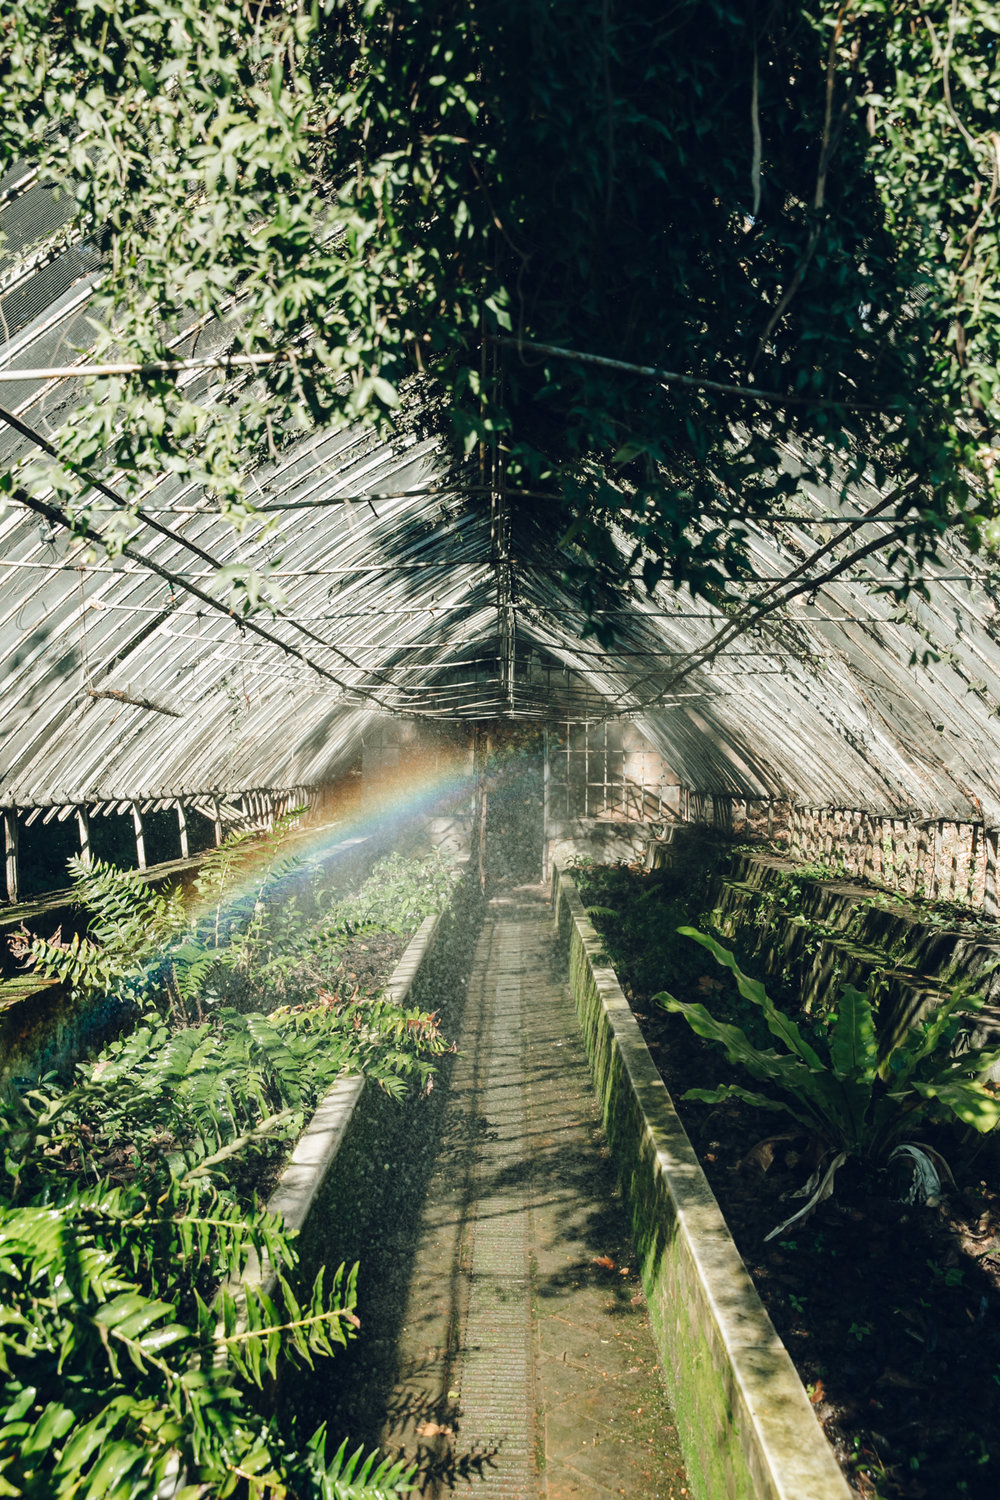 Rainbow inside a greenhouse.